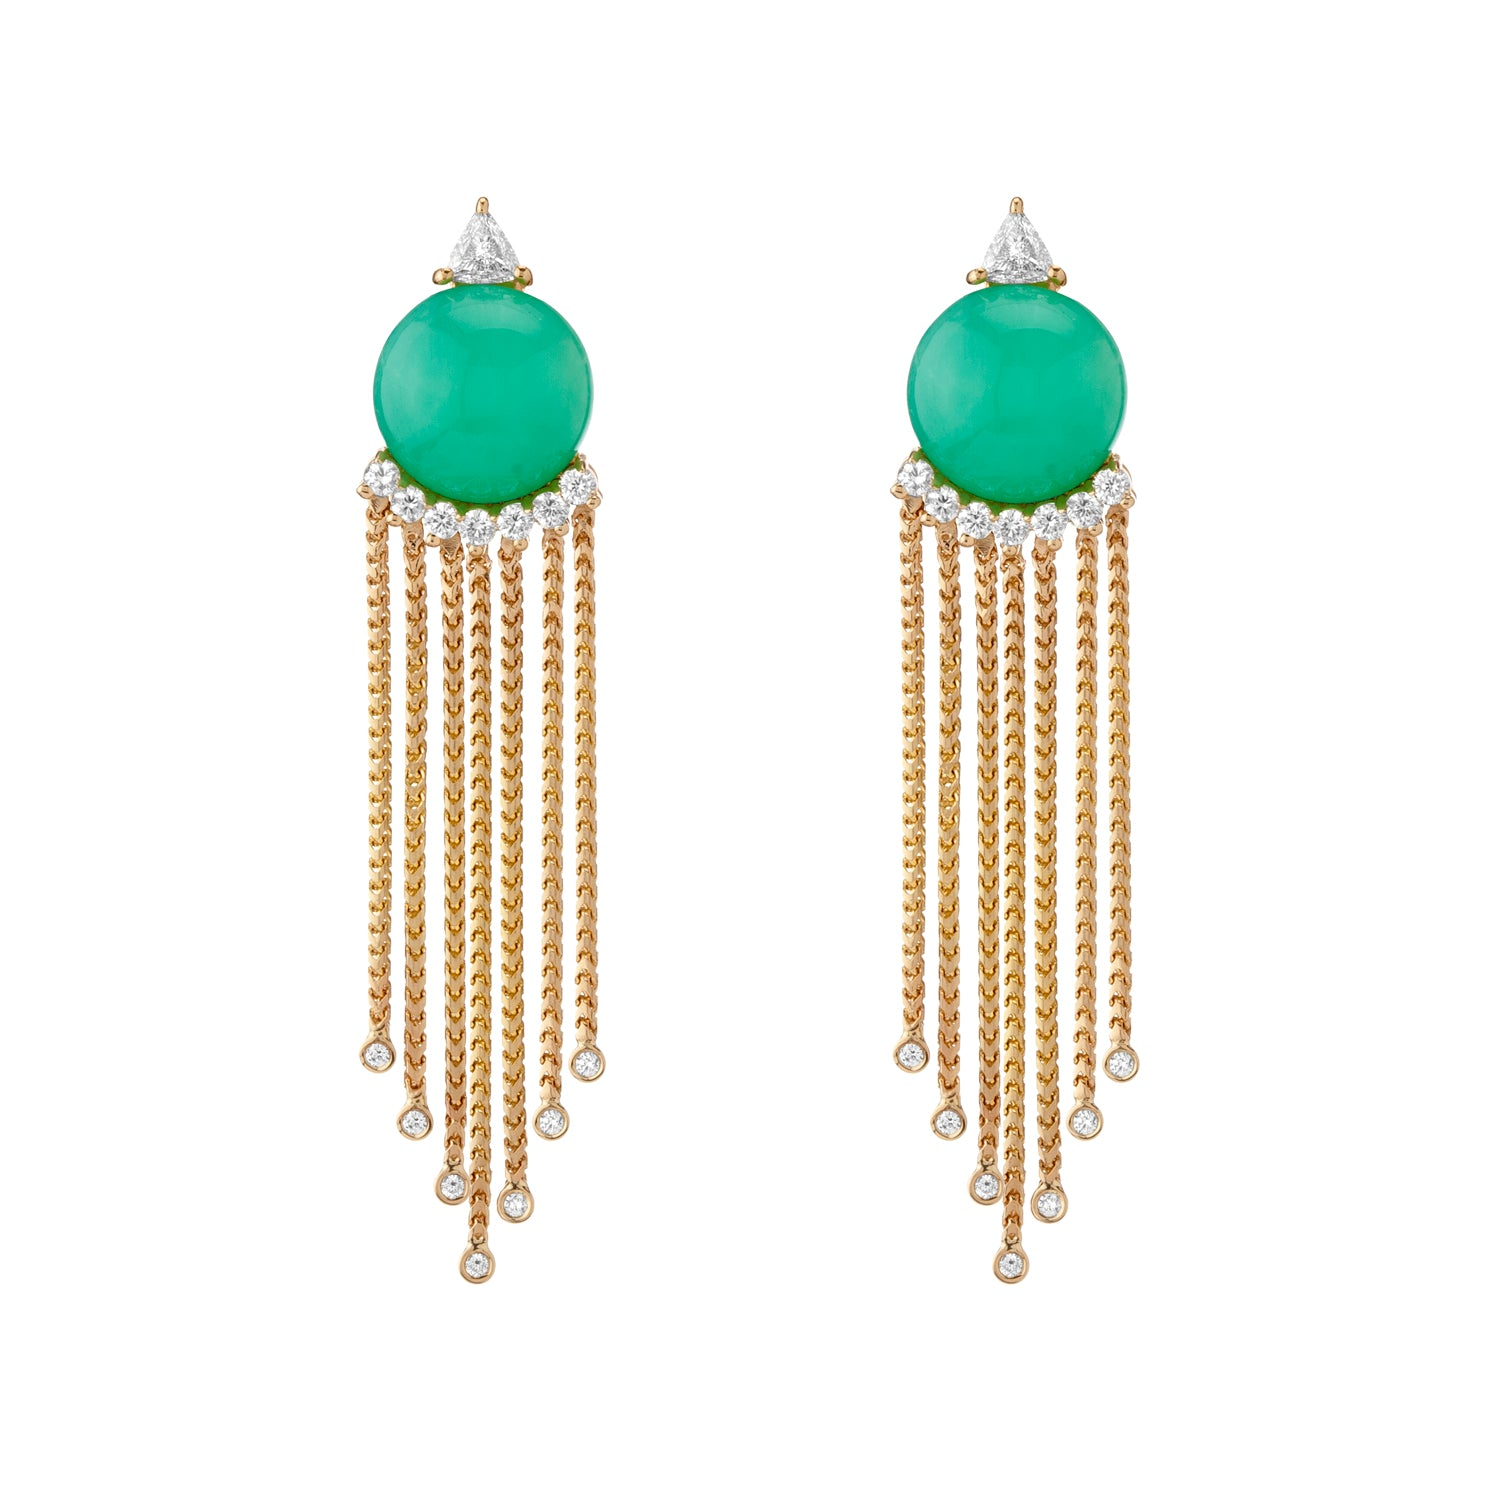 Sema Earrings - Chrysoprase